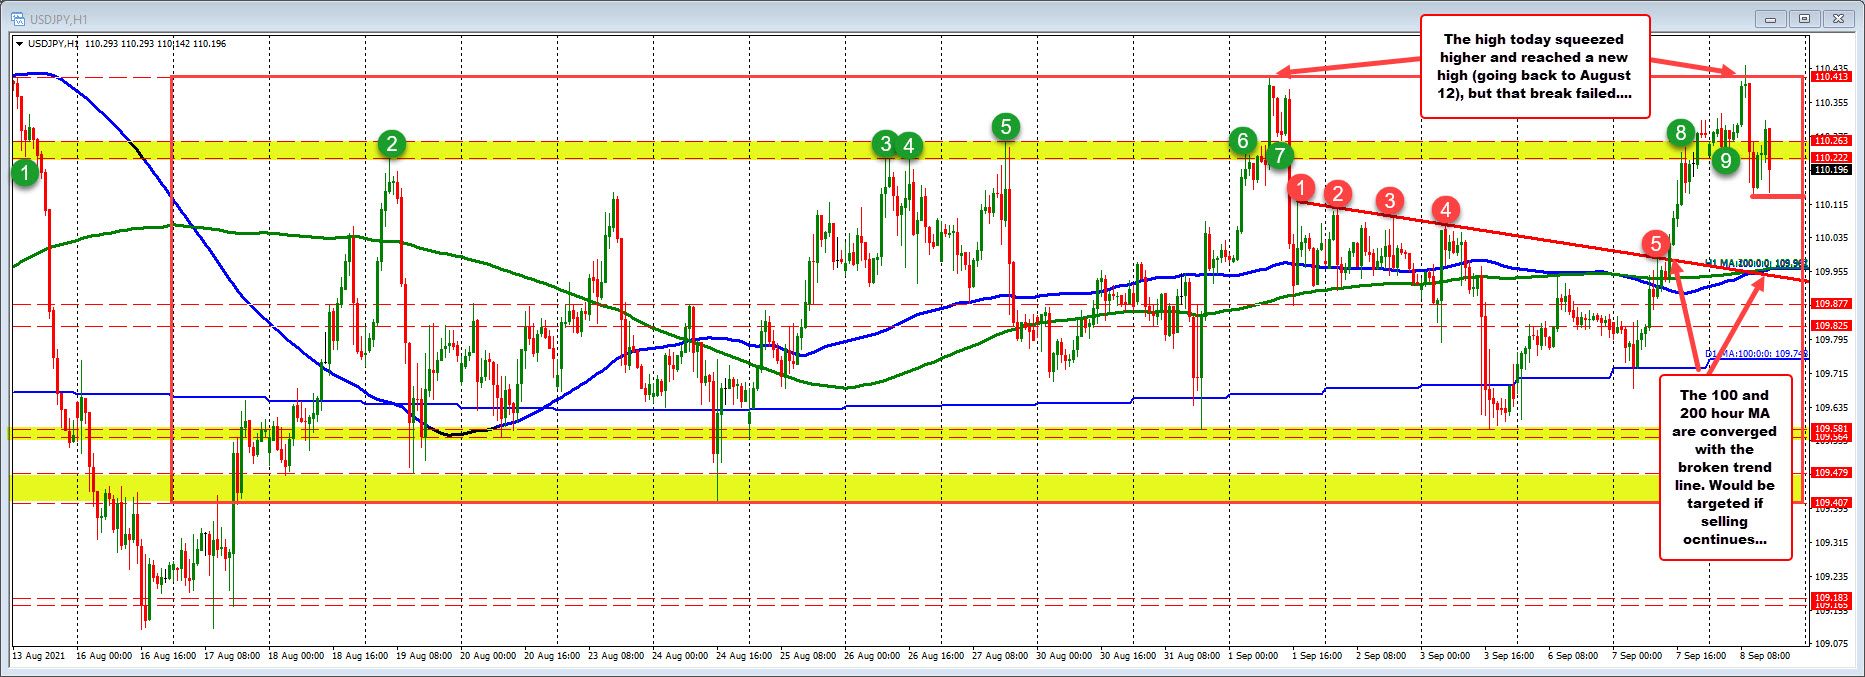 Watch the 110.263 level for intraday resistance IF the sellers are to take more control